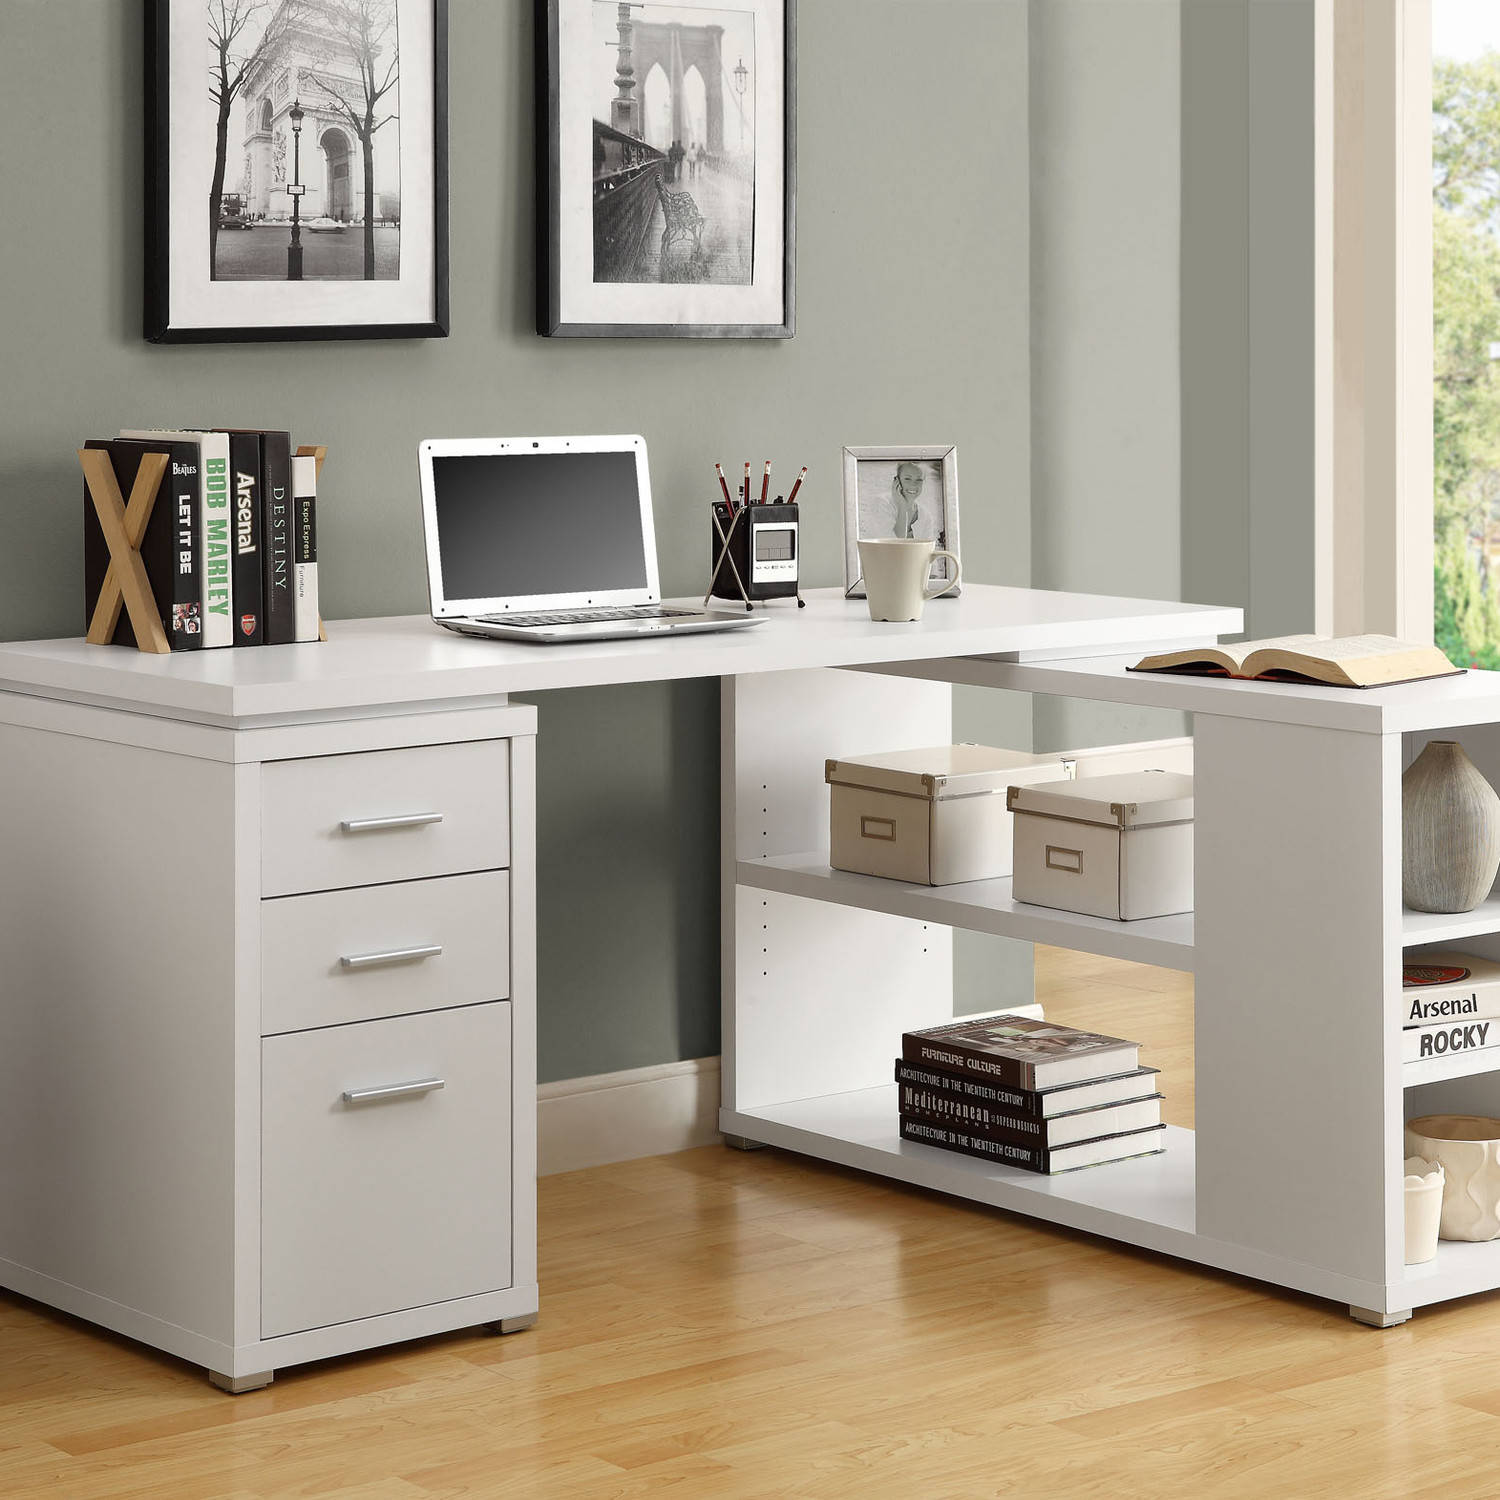 Merveilleux Complete Minimalist Home Office Using White Desk With Drawers And Shelves  On Laminate Teak Flooring